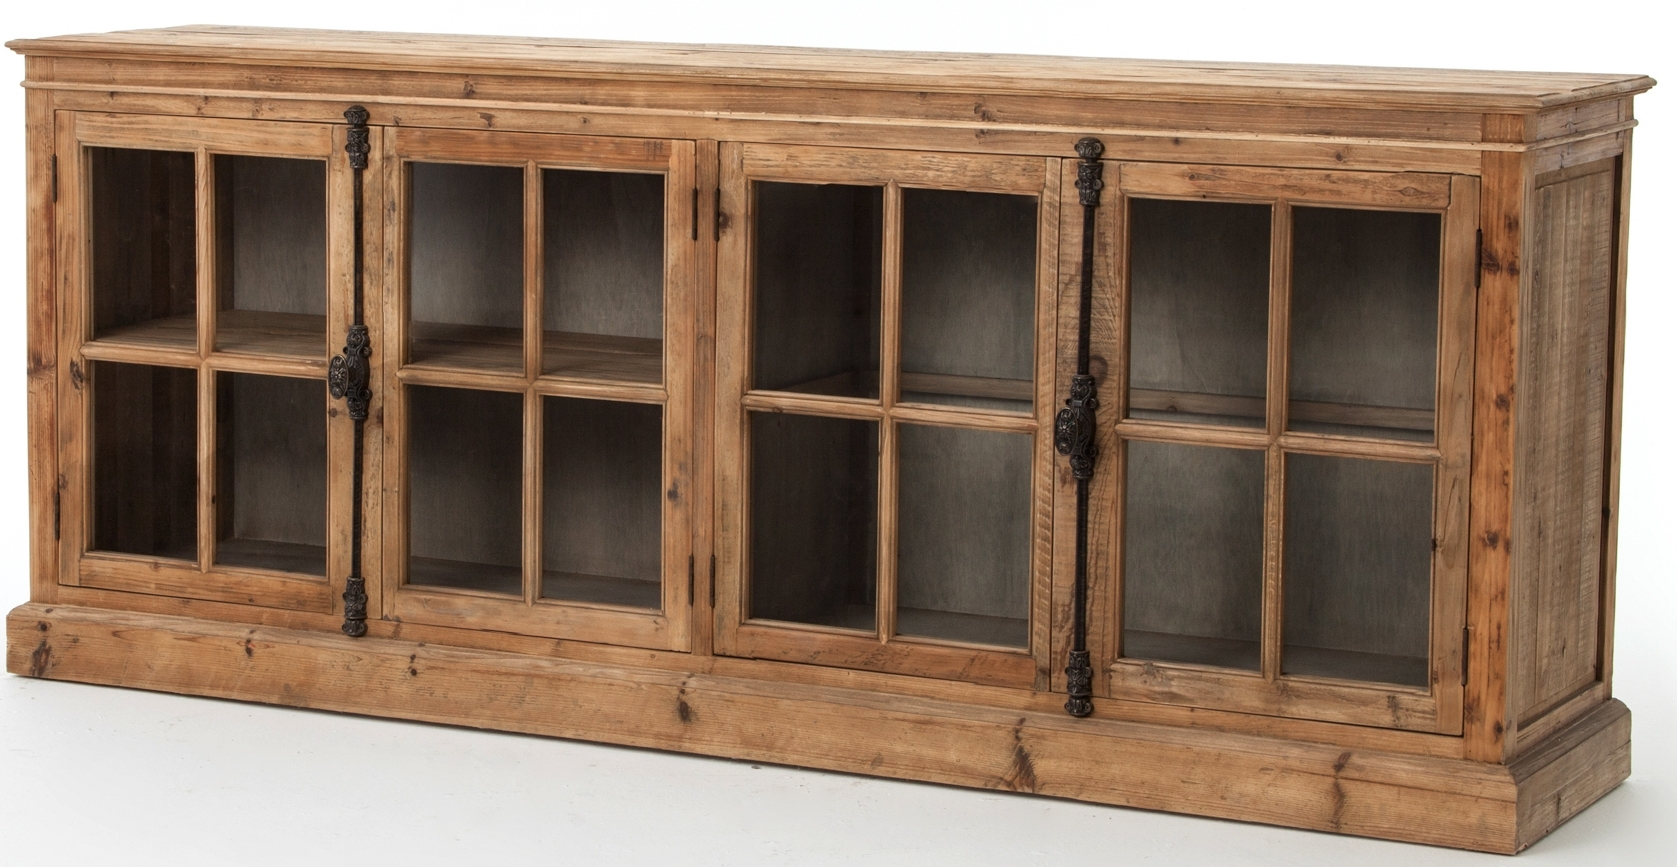 Cabinets, Consoles & Sofa Tables | Htgt Furniture in Light Brown Reclaimed Elm & Pine 84 Inch Sideboards (Image 8 of 30)